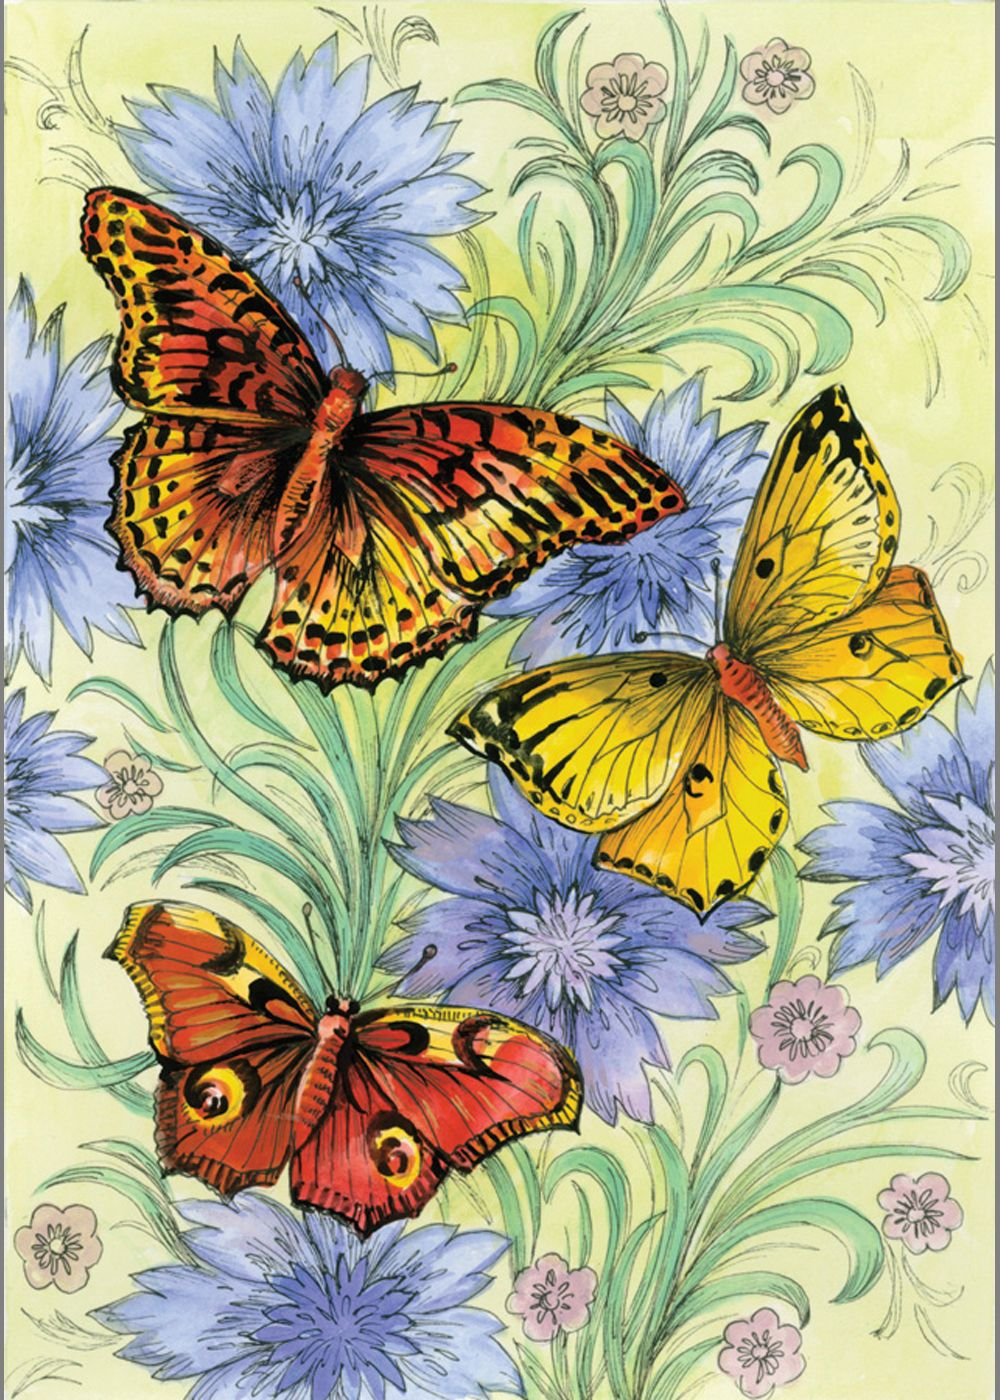 https://www.madaboutgardening.com/store/images/5362/1154-Butterflies-&-Flowers-flag.jpg